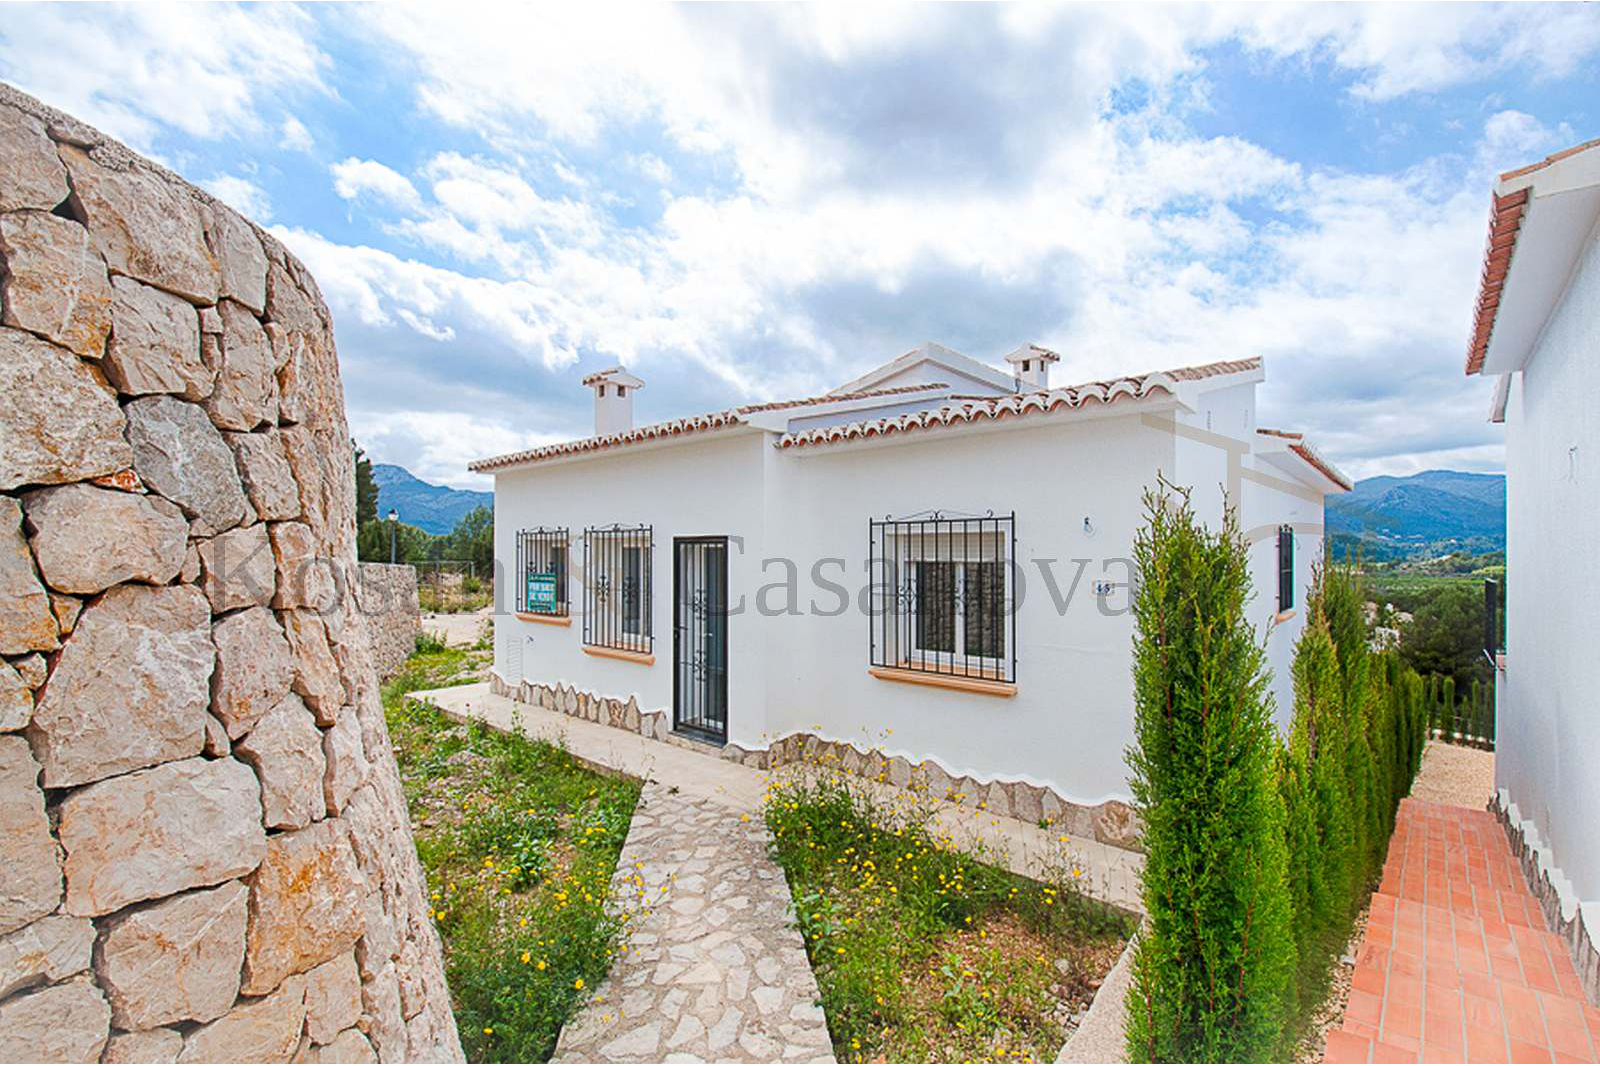 Murla- Detached villas, ready to move into on the Costa Blanca pic 1